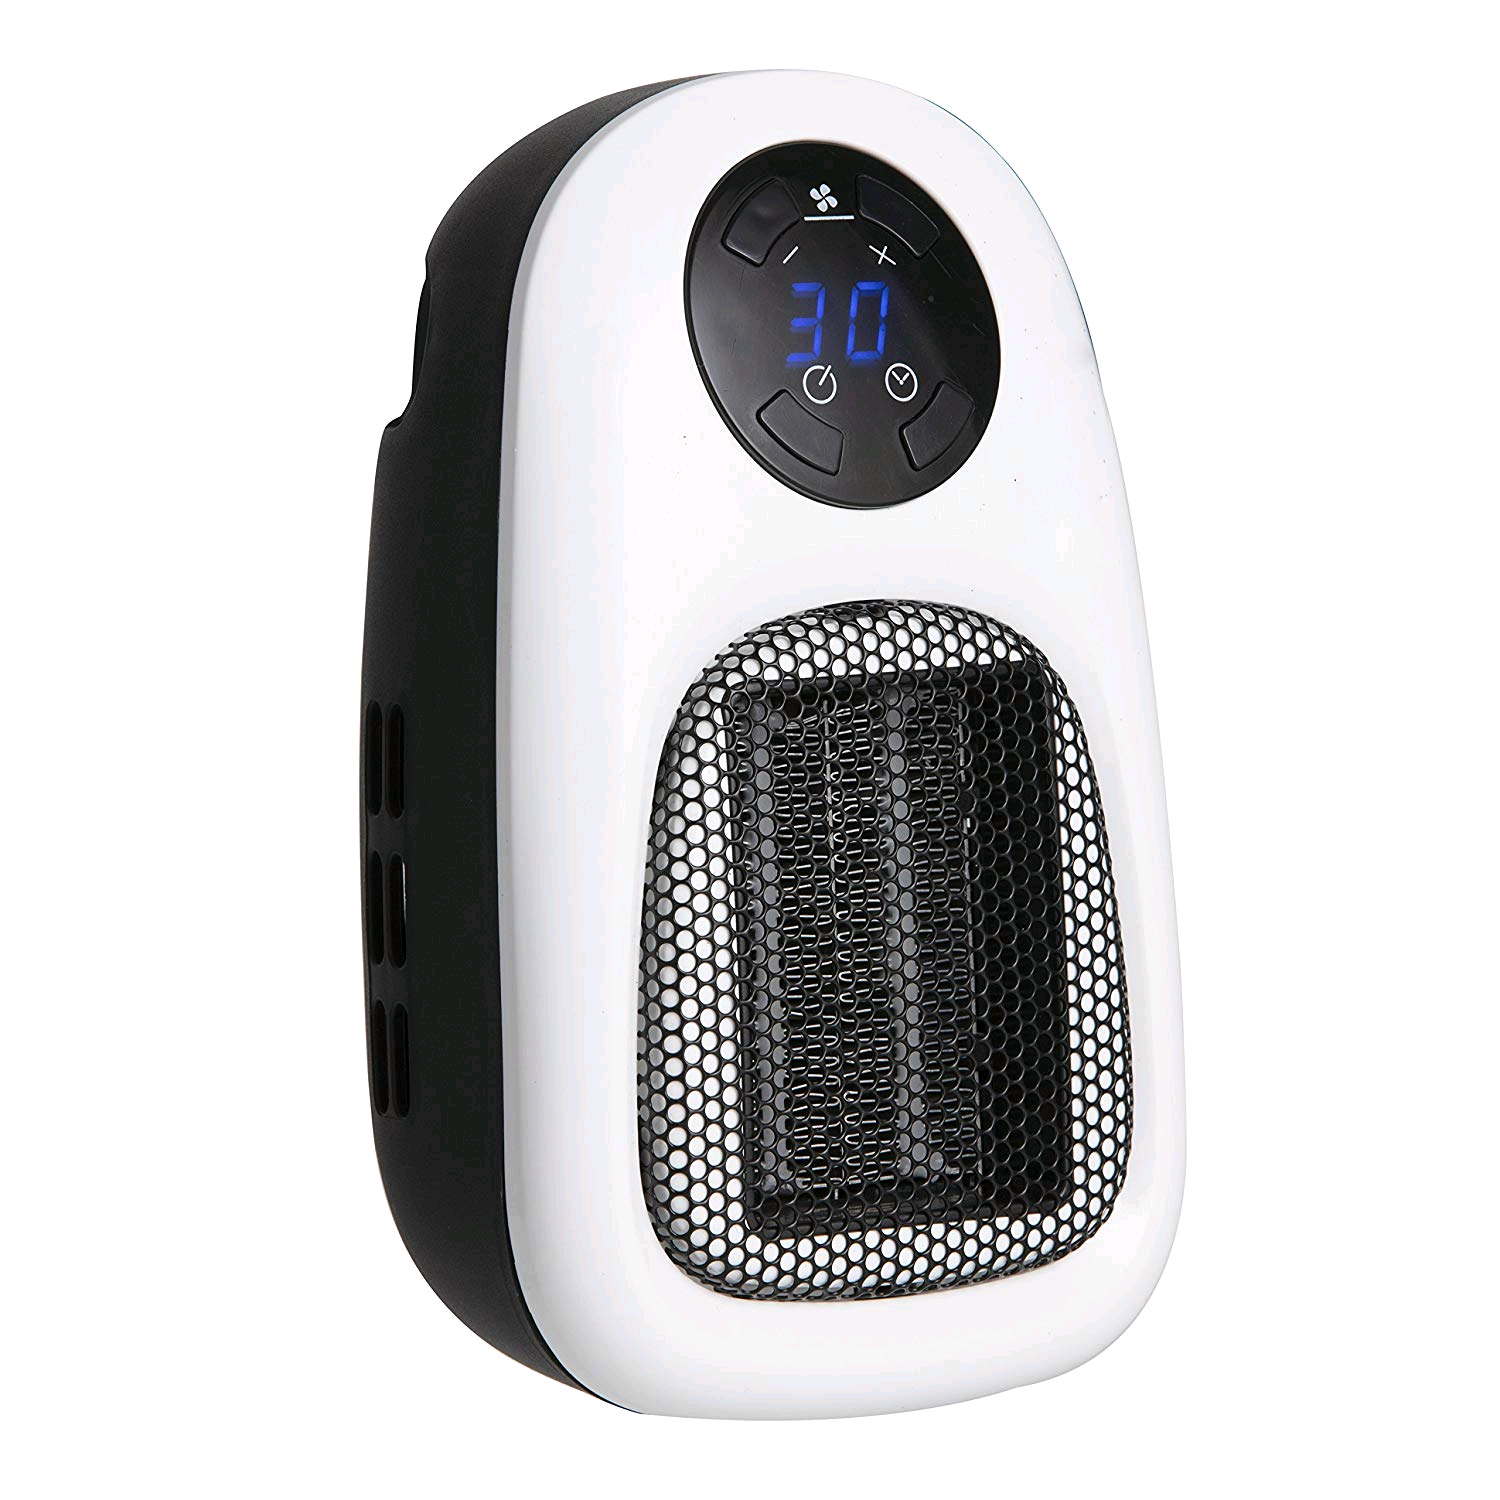 Warmlite Personal Portable PTC Heater Digital Plug In With LED Display 500w Black/White